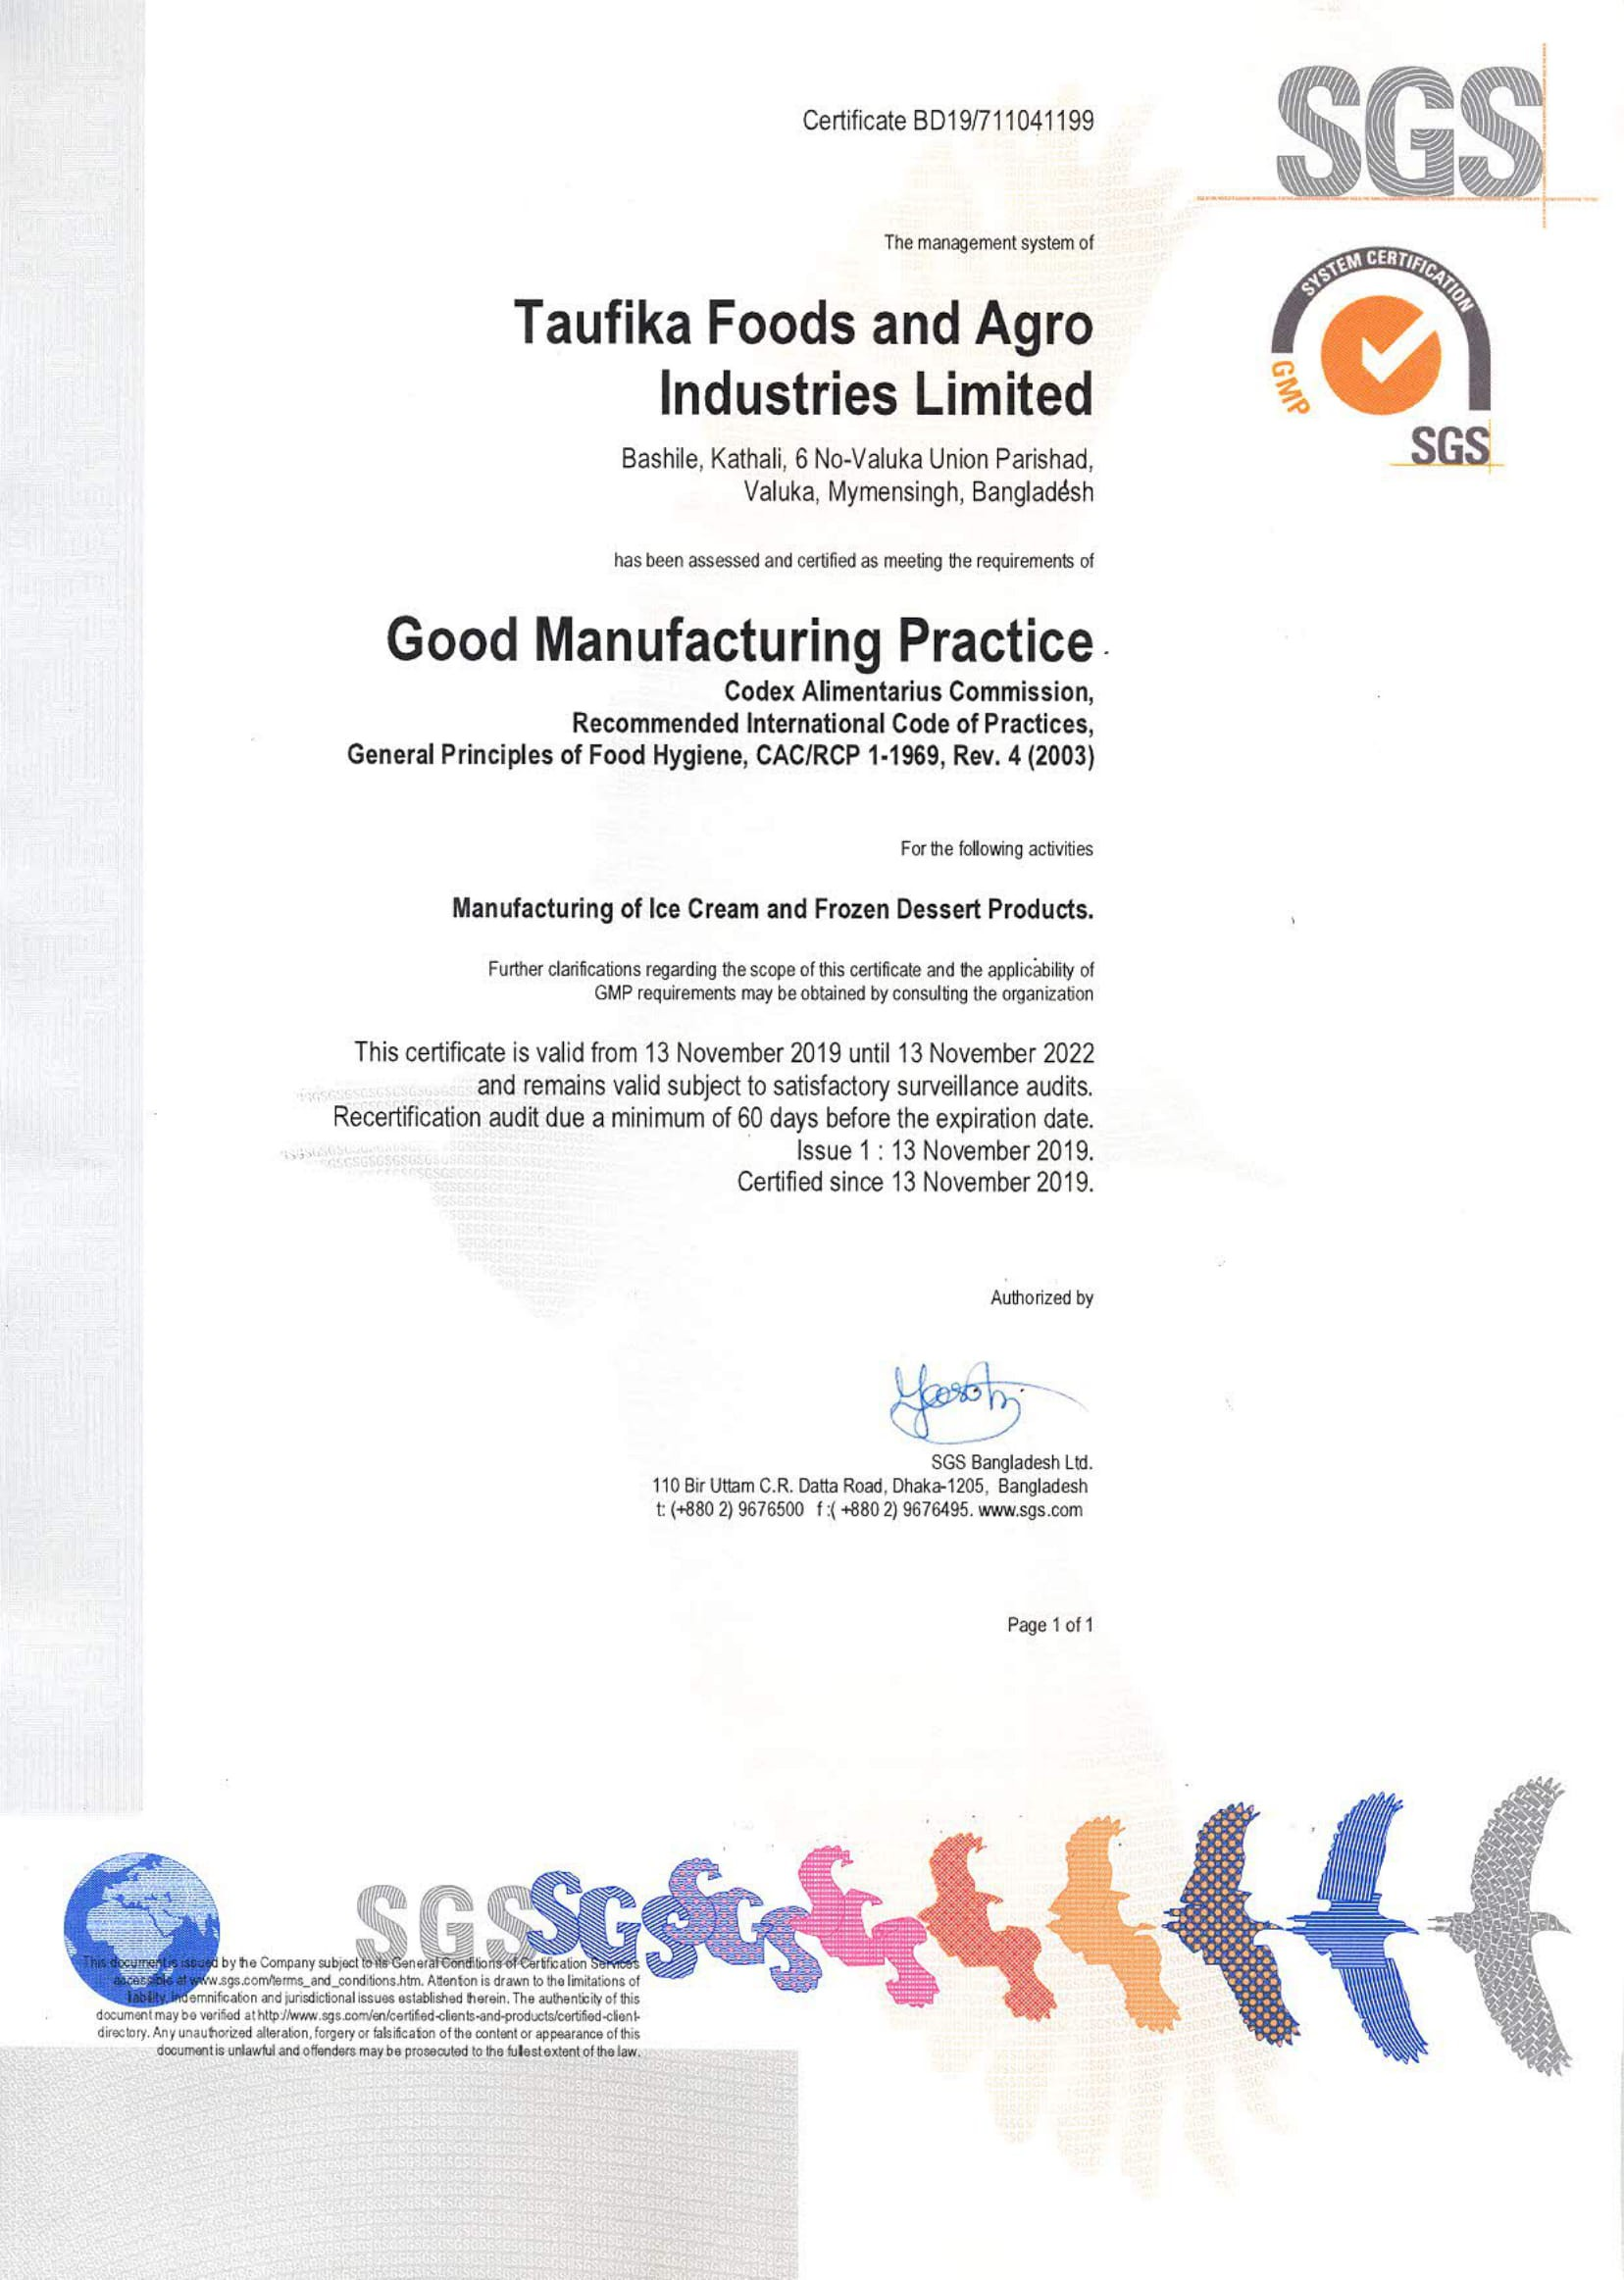 Good Manufacturing Practice Certification